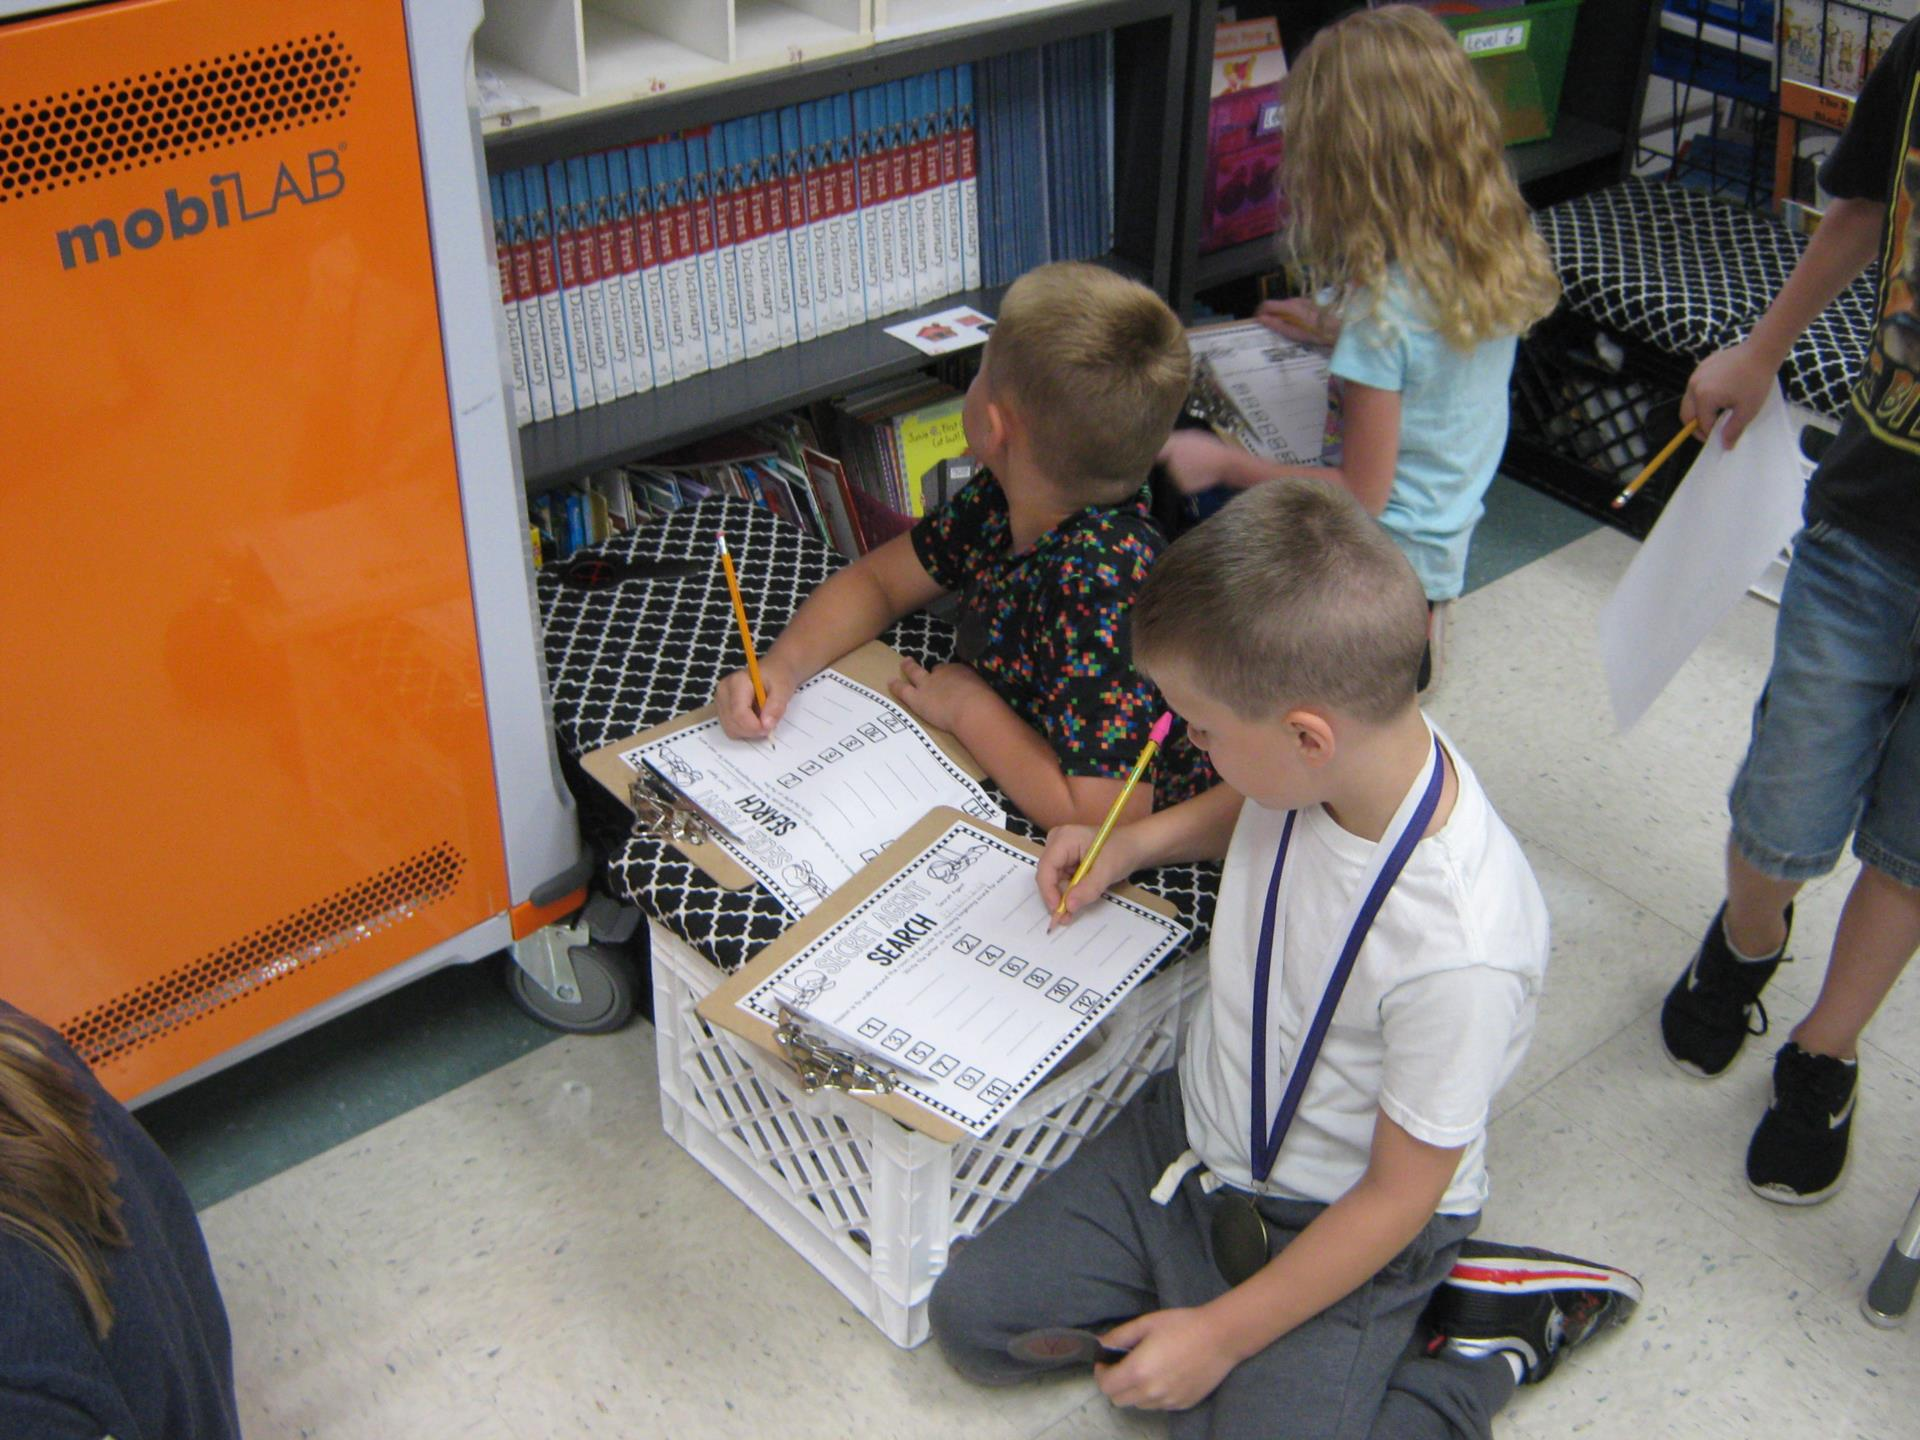 Students record their discoveries on their clipboards.  They are seated on the floor next to the book case.